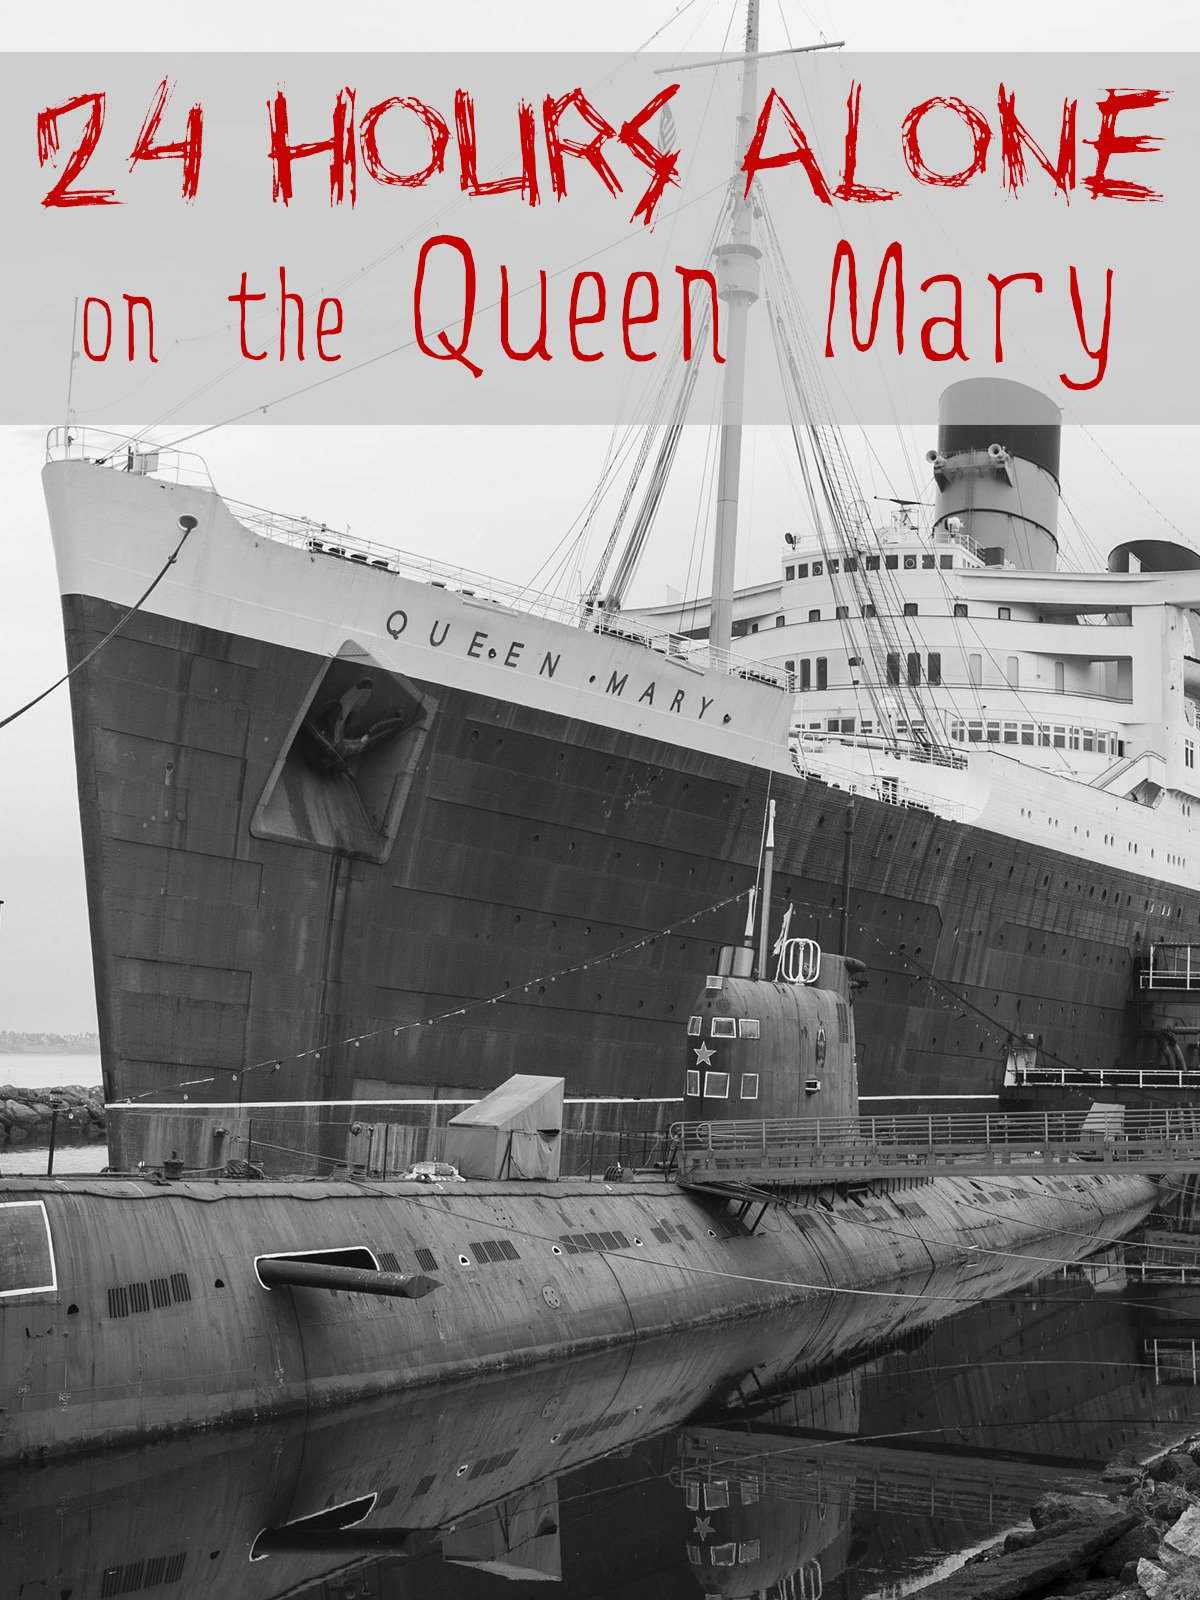 24 Hours alone on the Queen Mary